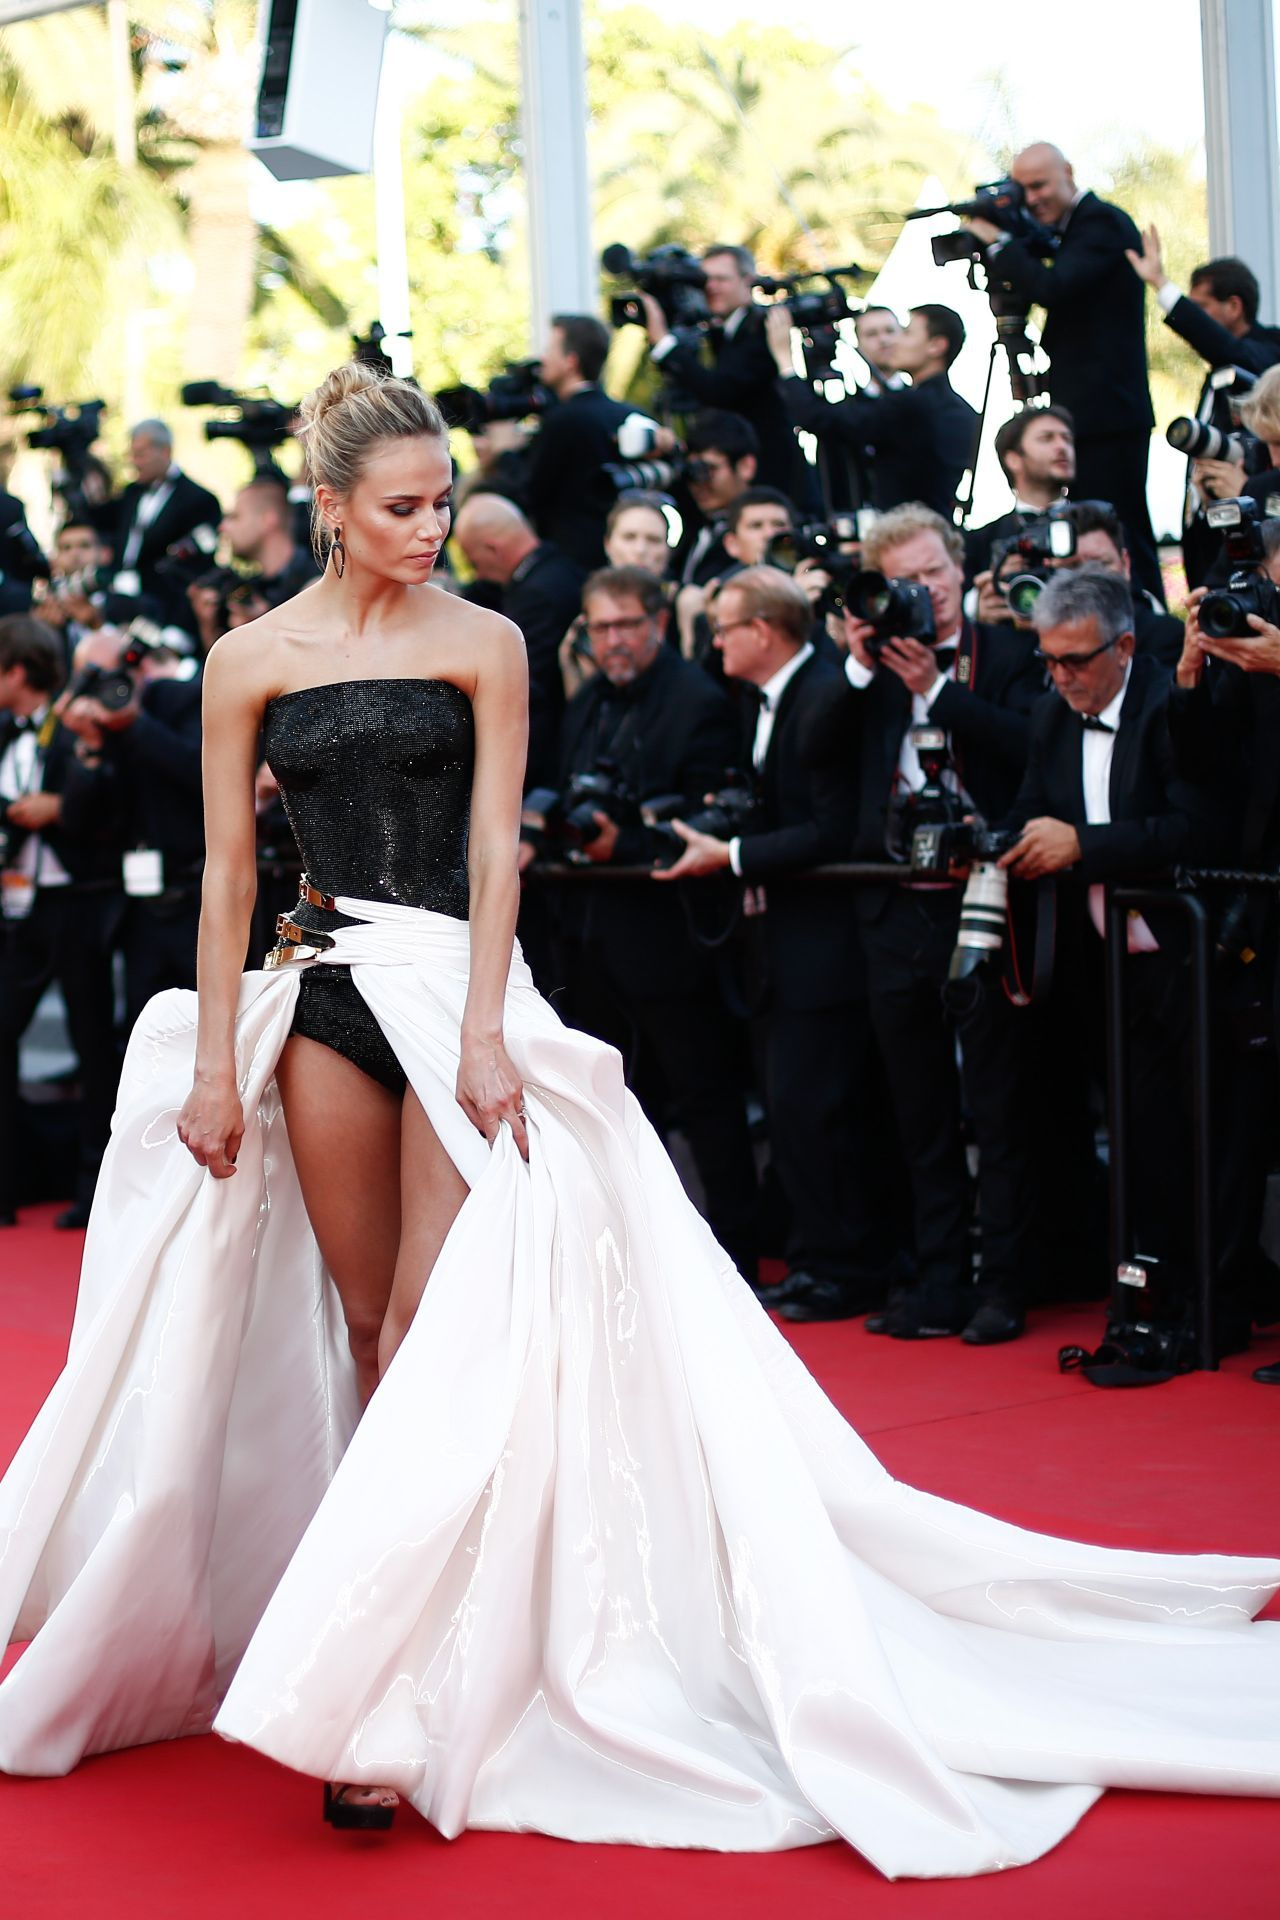 Natasha Poly in Atelier Versace Gown at Carol Premiere at 2015 ...